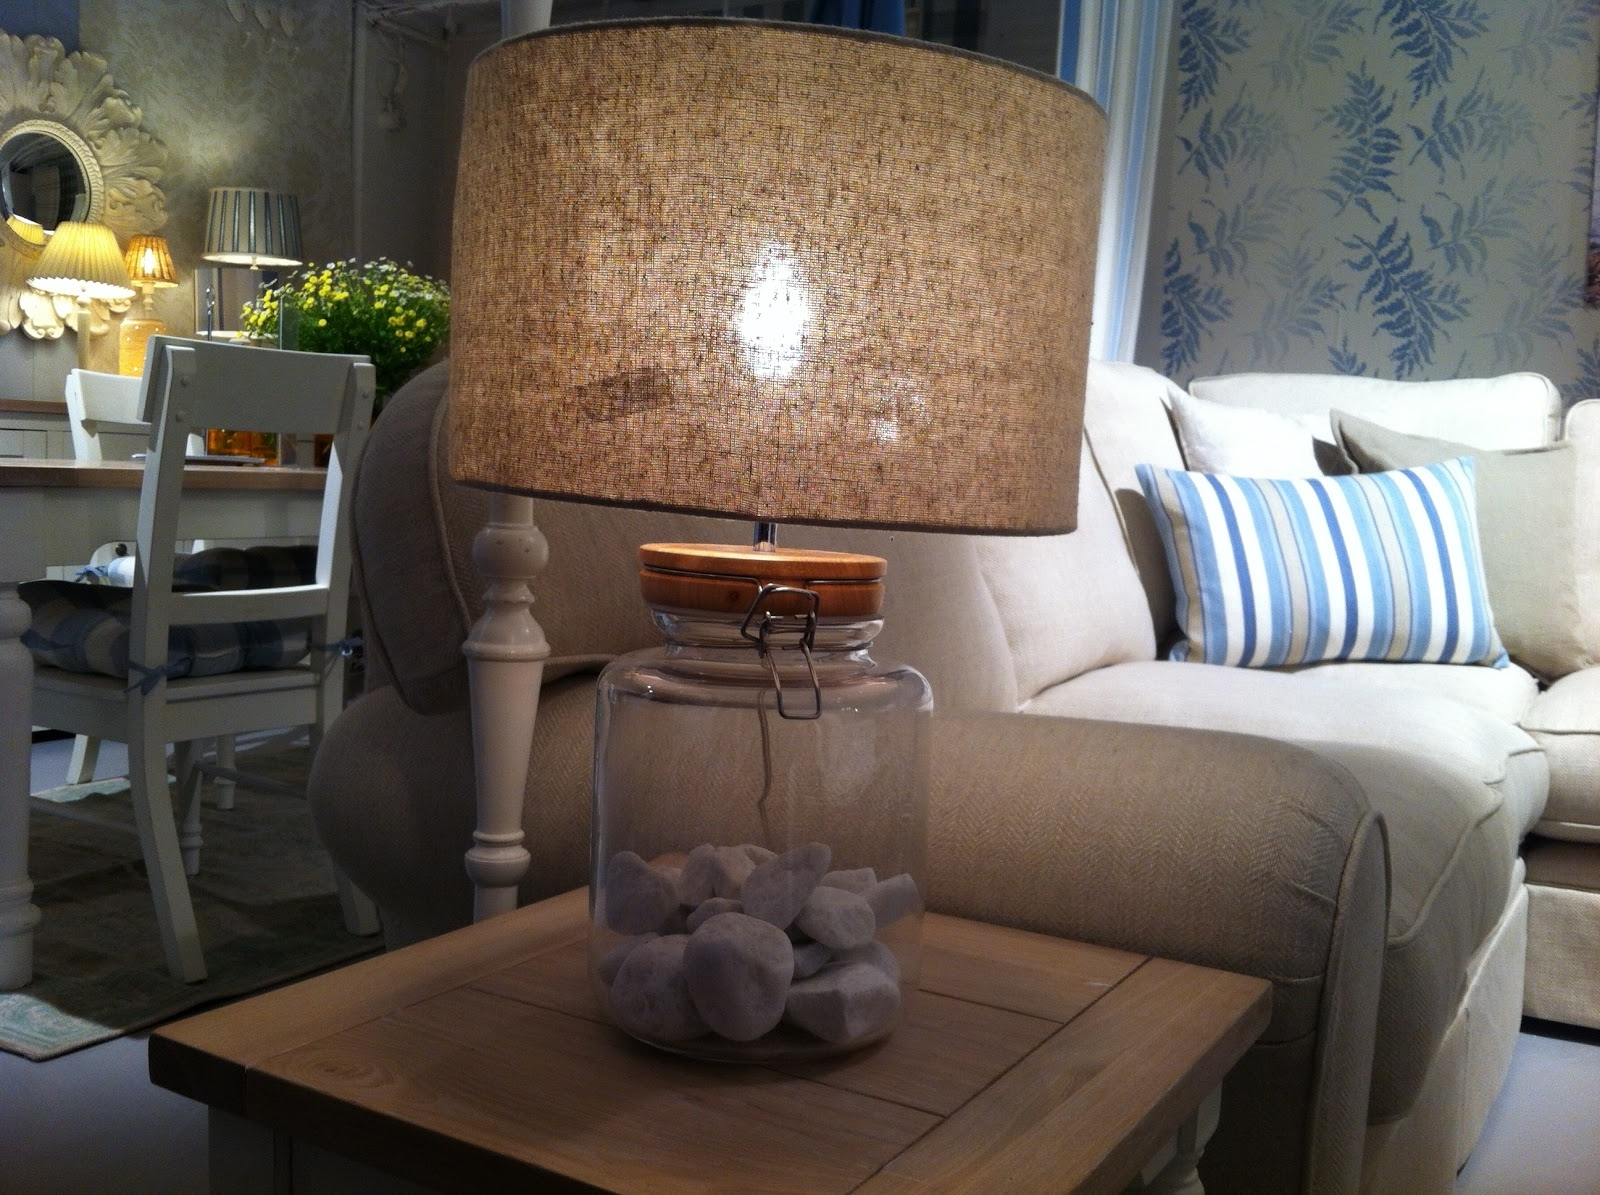 Furniture : Lamp Modern End Table Design White Glass Lamps Wooden Within Recent Laura Ashley Table Lamps For Living Room (View 7 of 20)